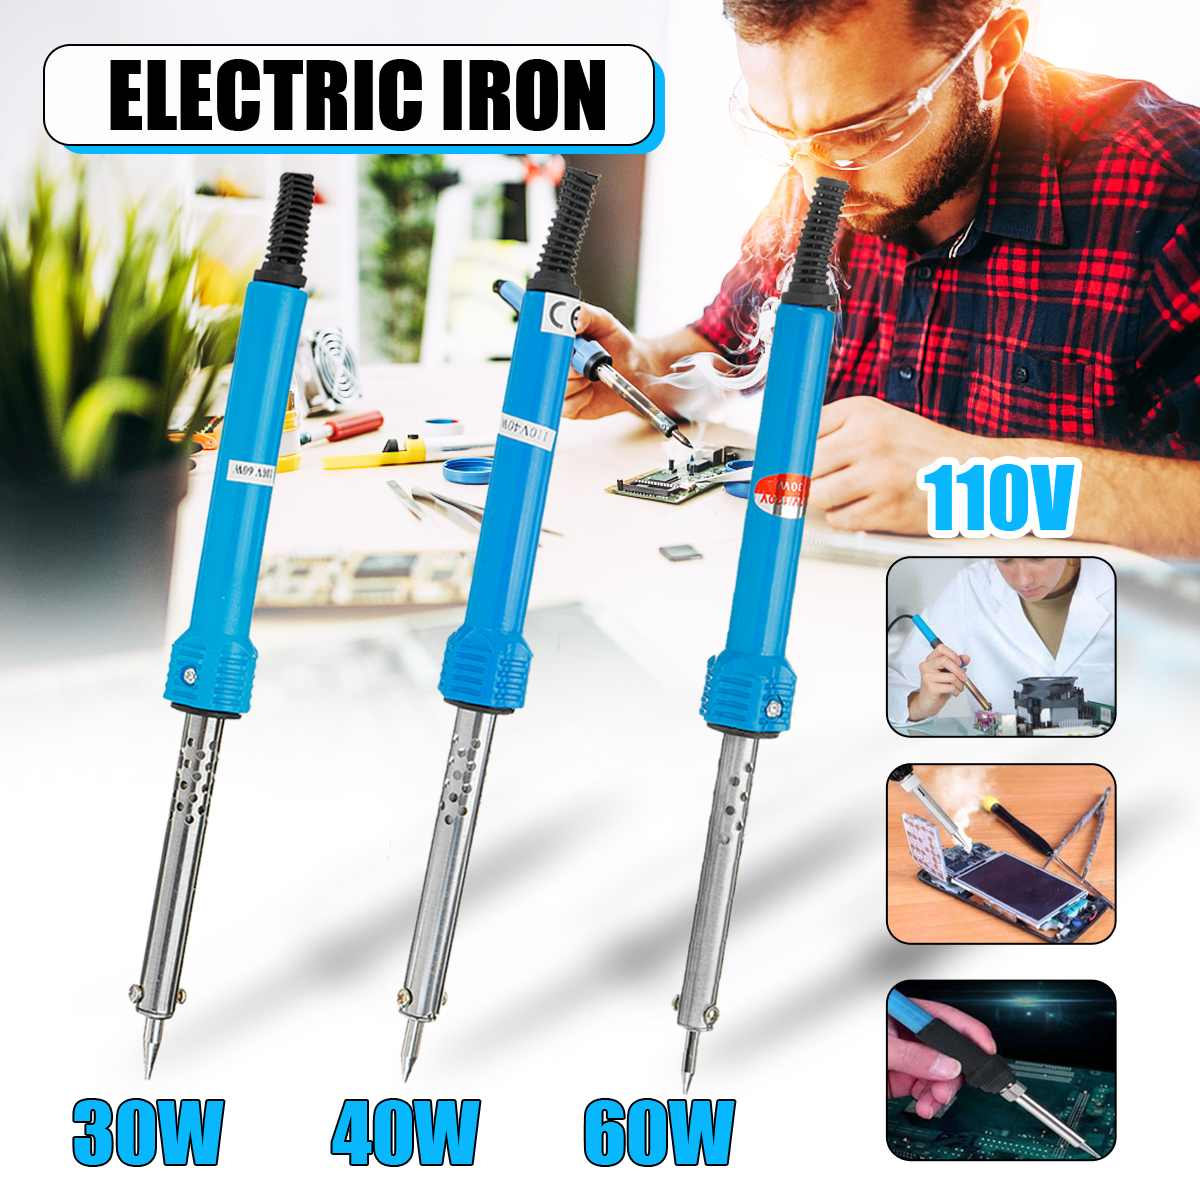 Soldering Iron 110V 30/40/60W Electric Solder Iron Rework Station Mini Handle Heat Pencil Welding Repair Tools US Plug